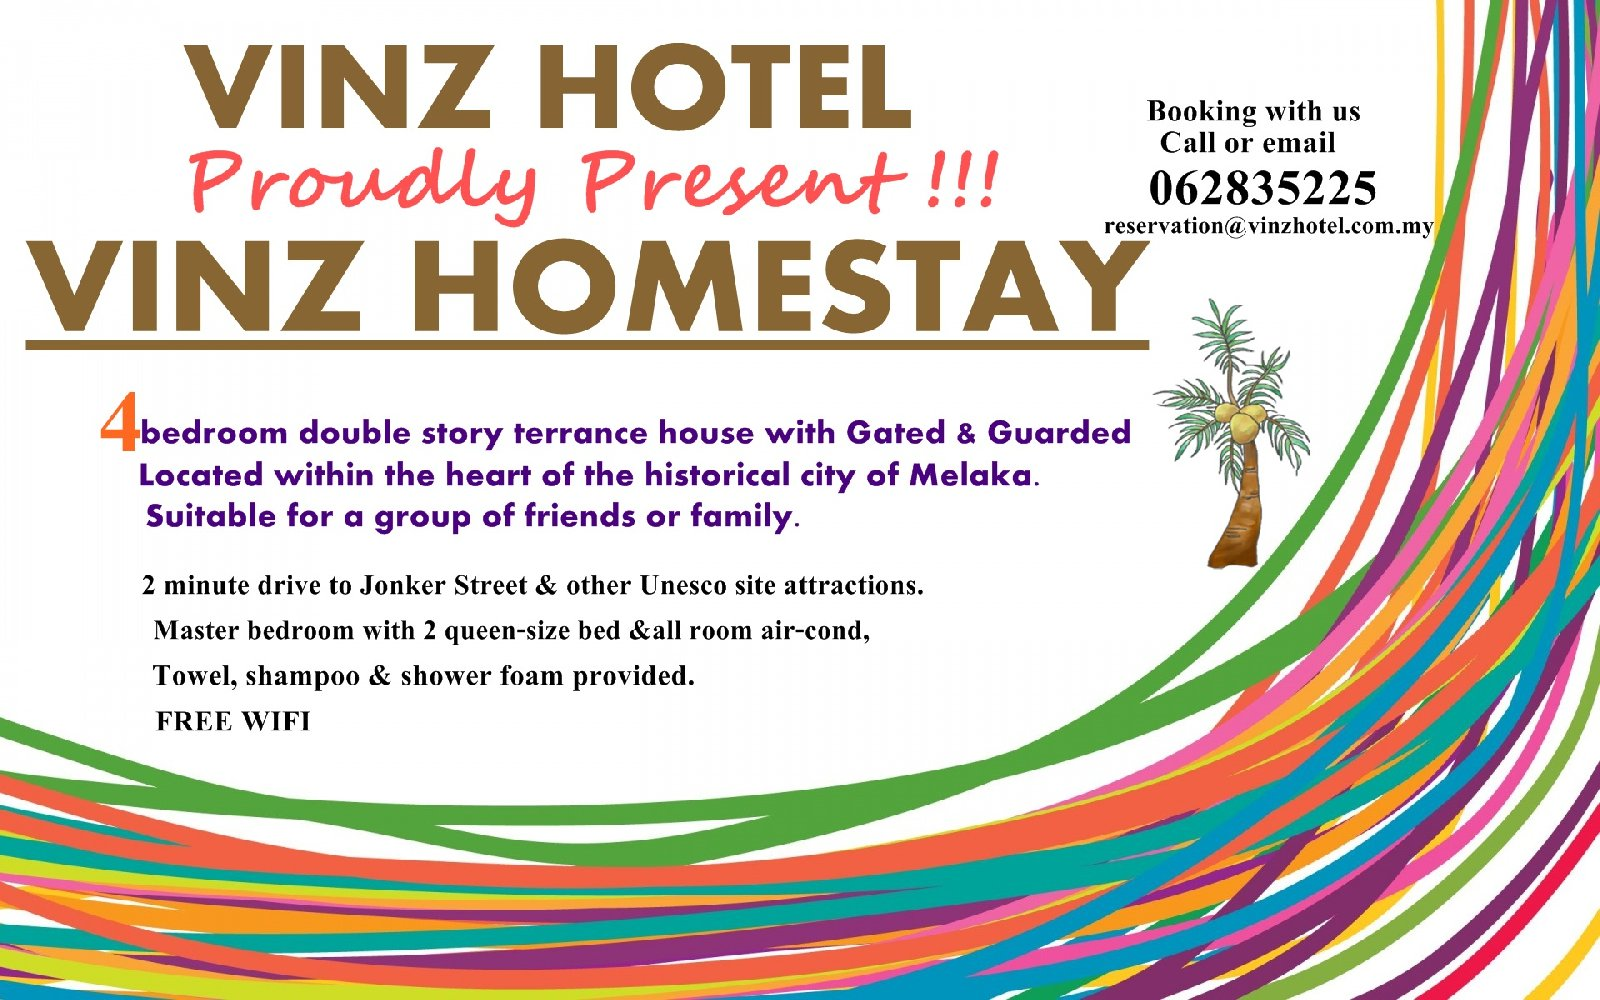 Proudly Present VINZ HOMESTAY